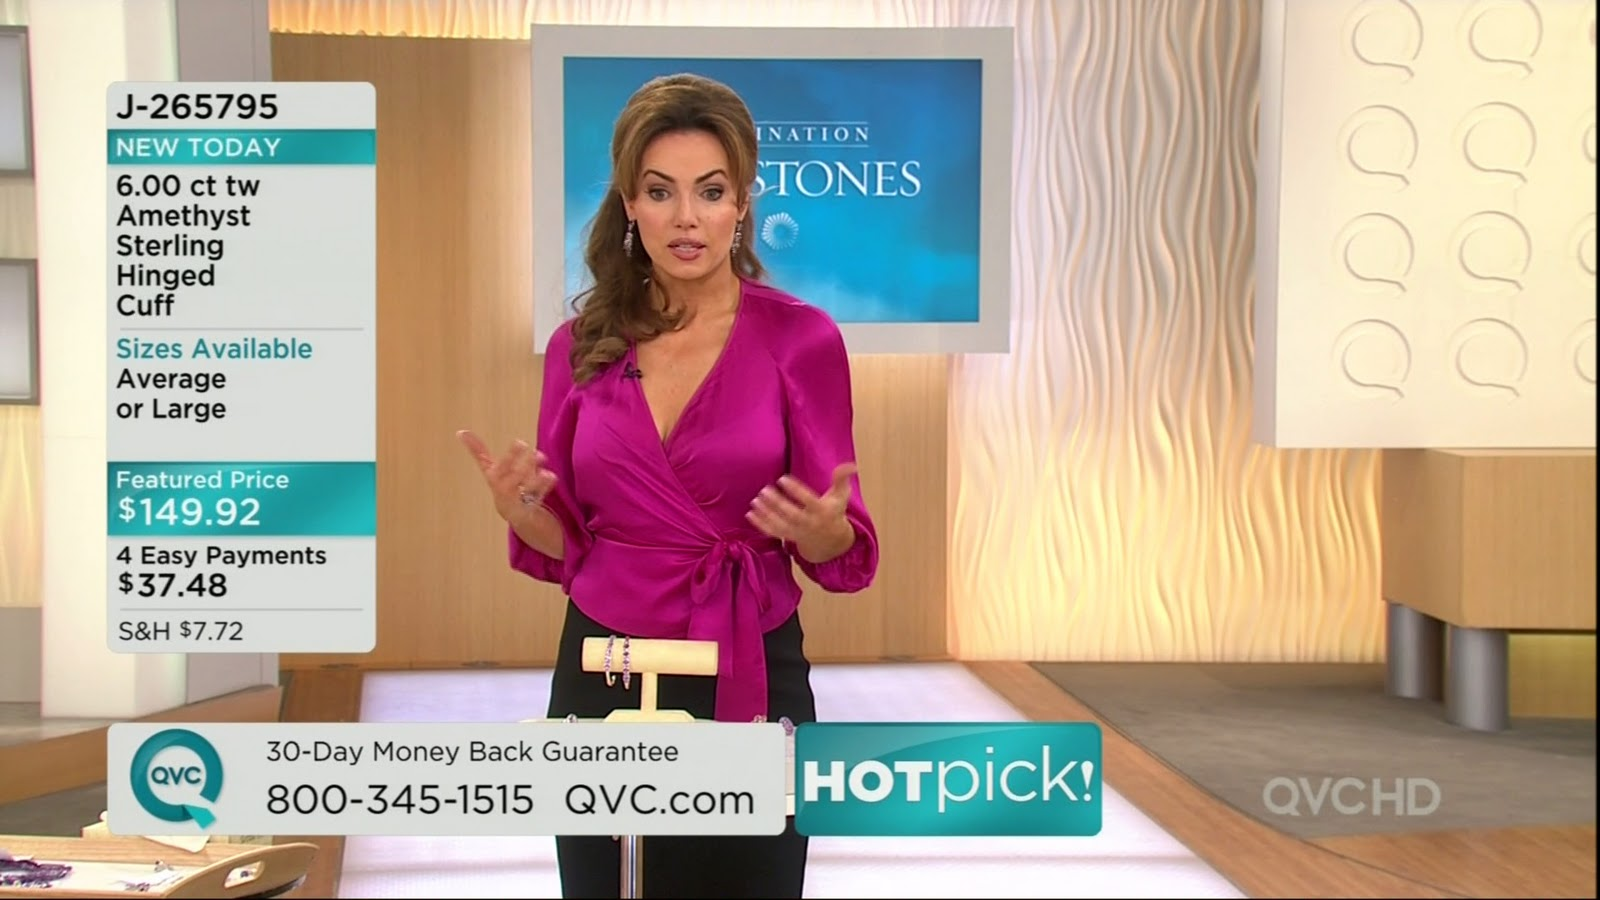 Ladies in Satin Blouses: Lisa Robertson - magenta satin blouse